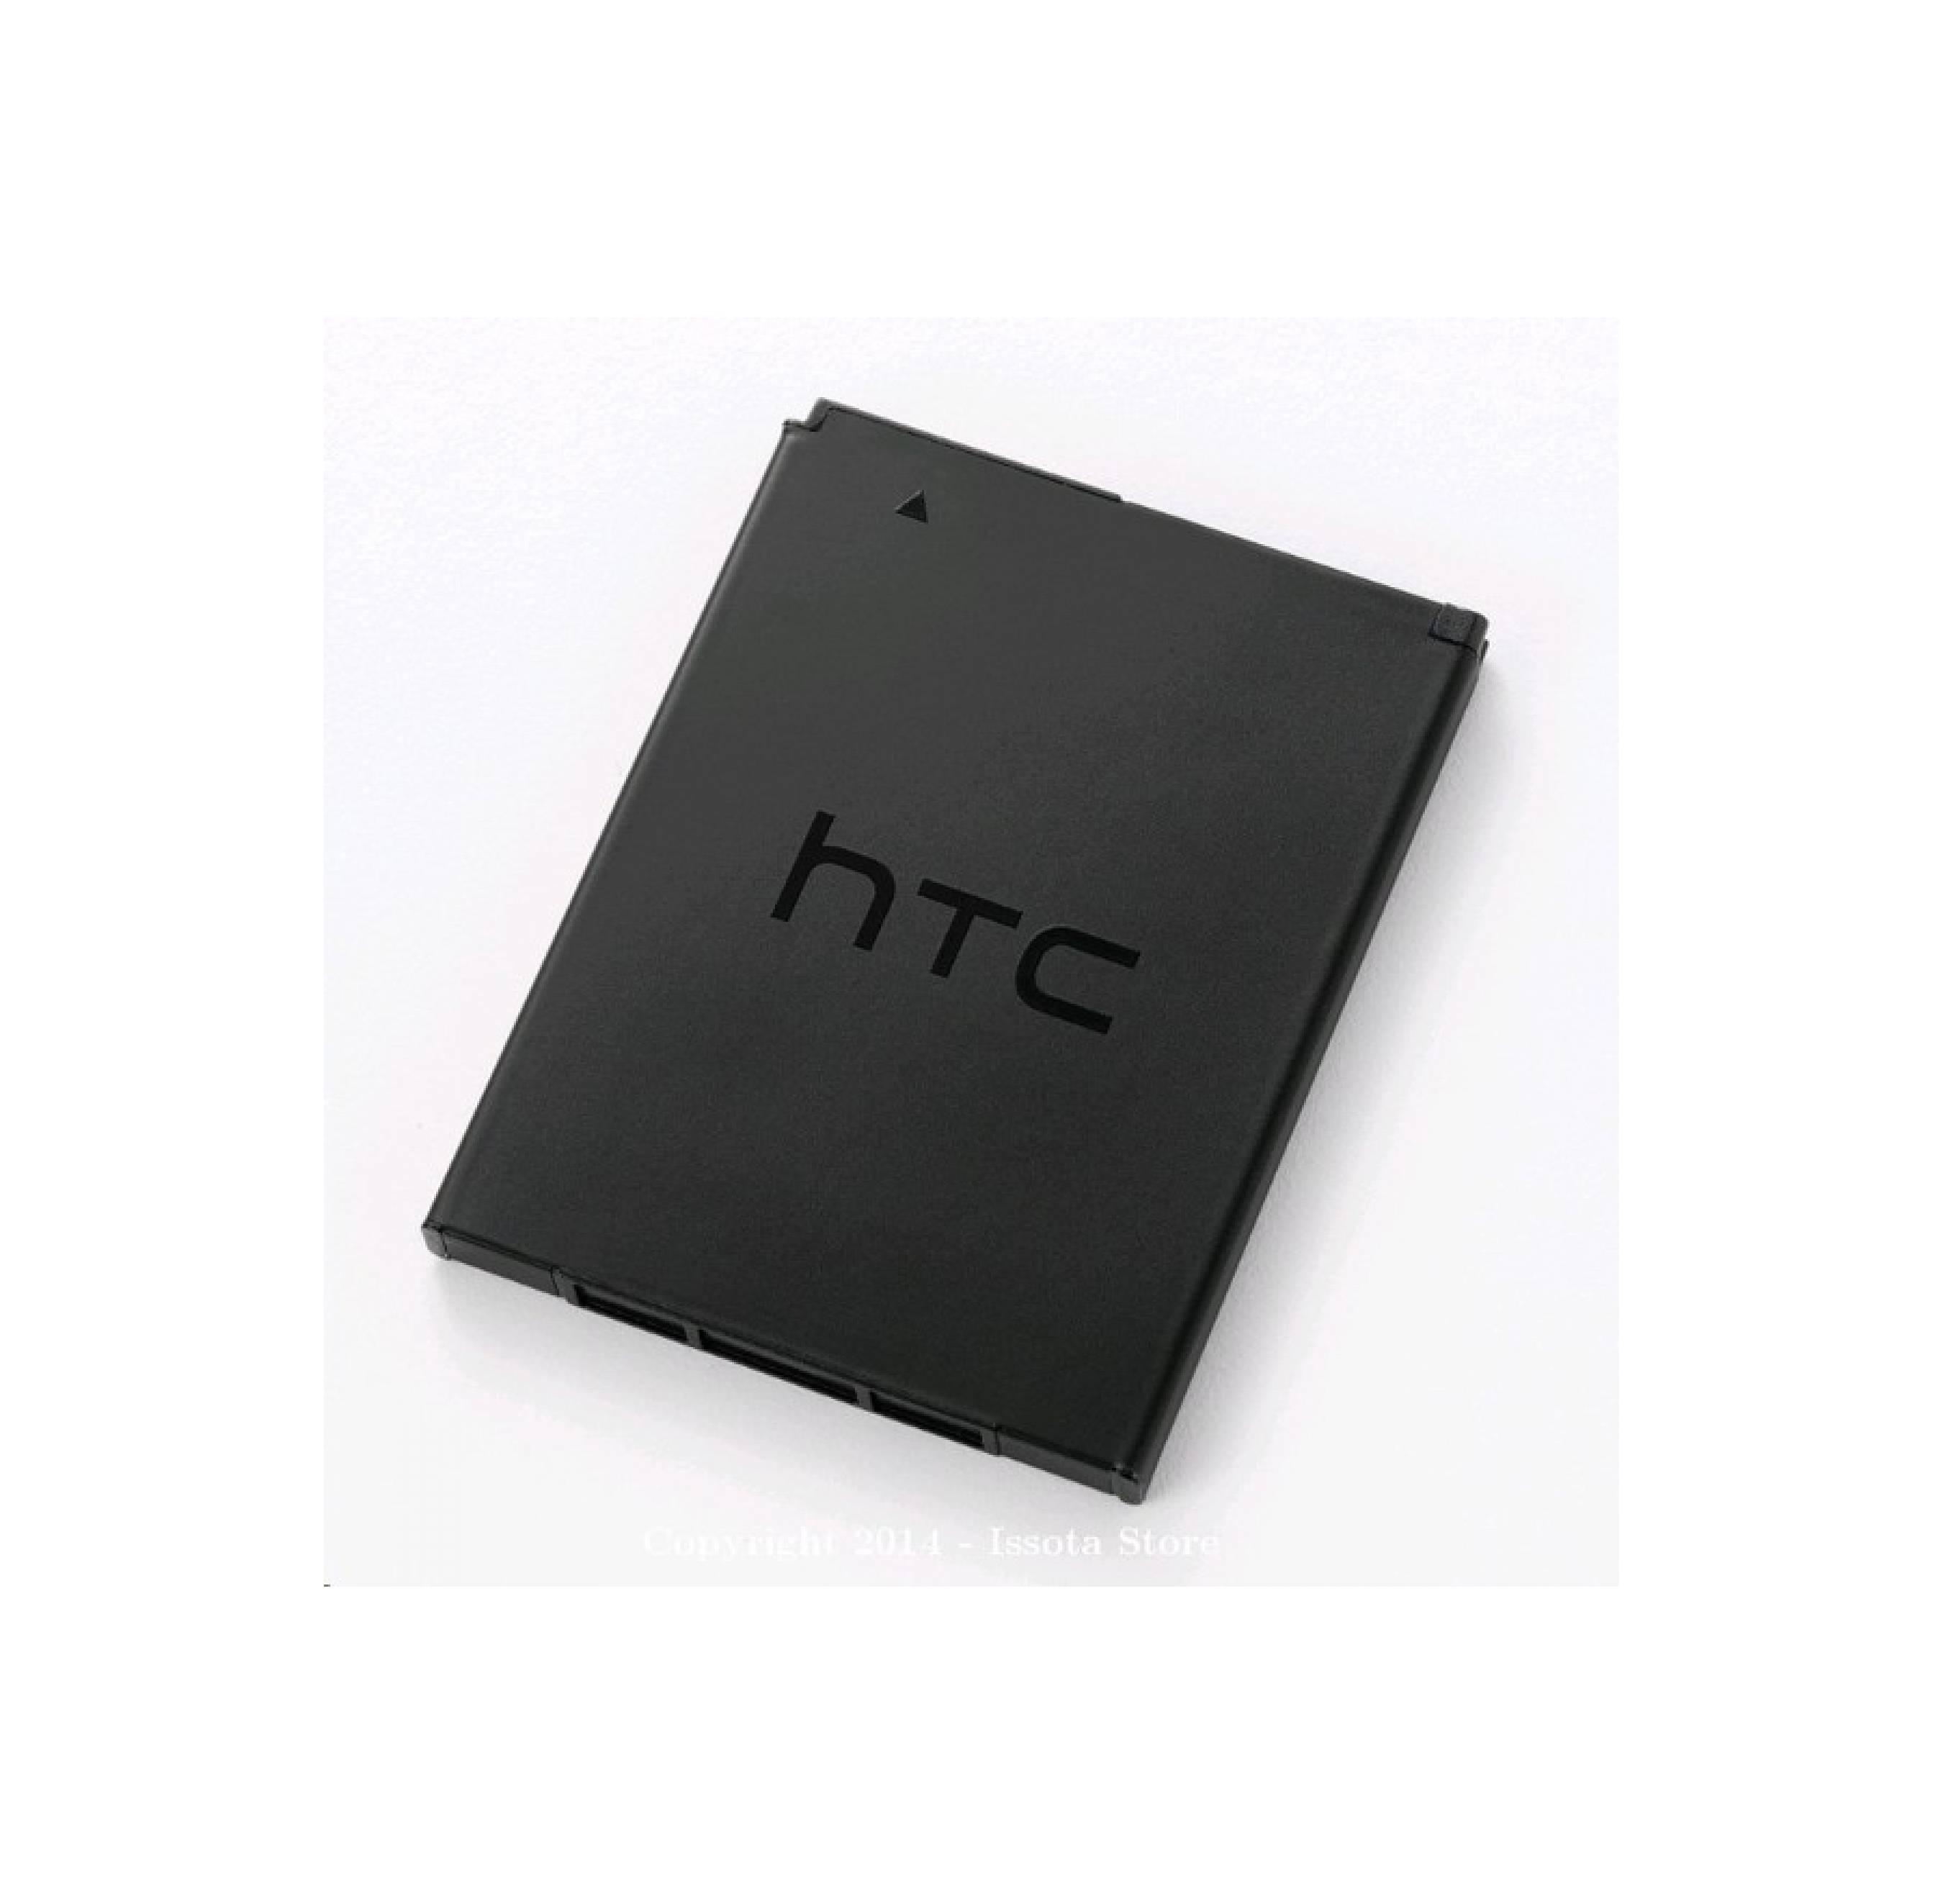 Battery HTC T528 / One SV / SU / SC / ONE ST Seri BM60100 Original 100